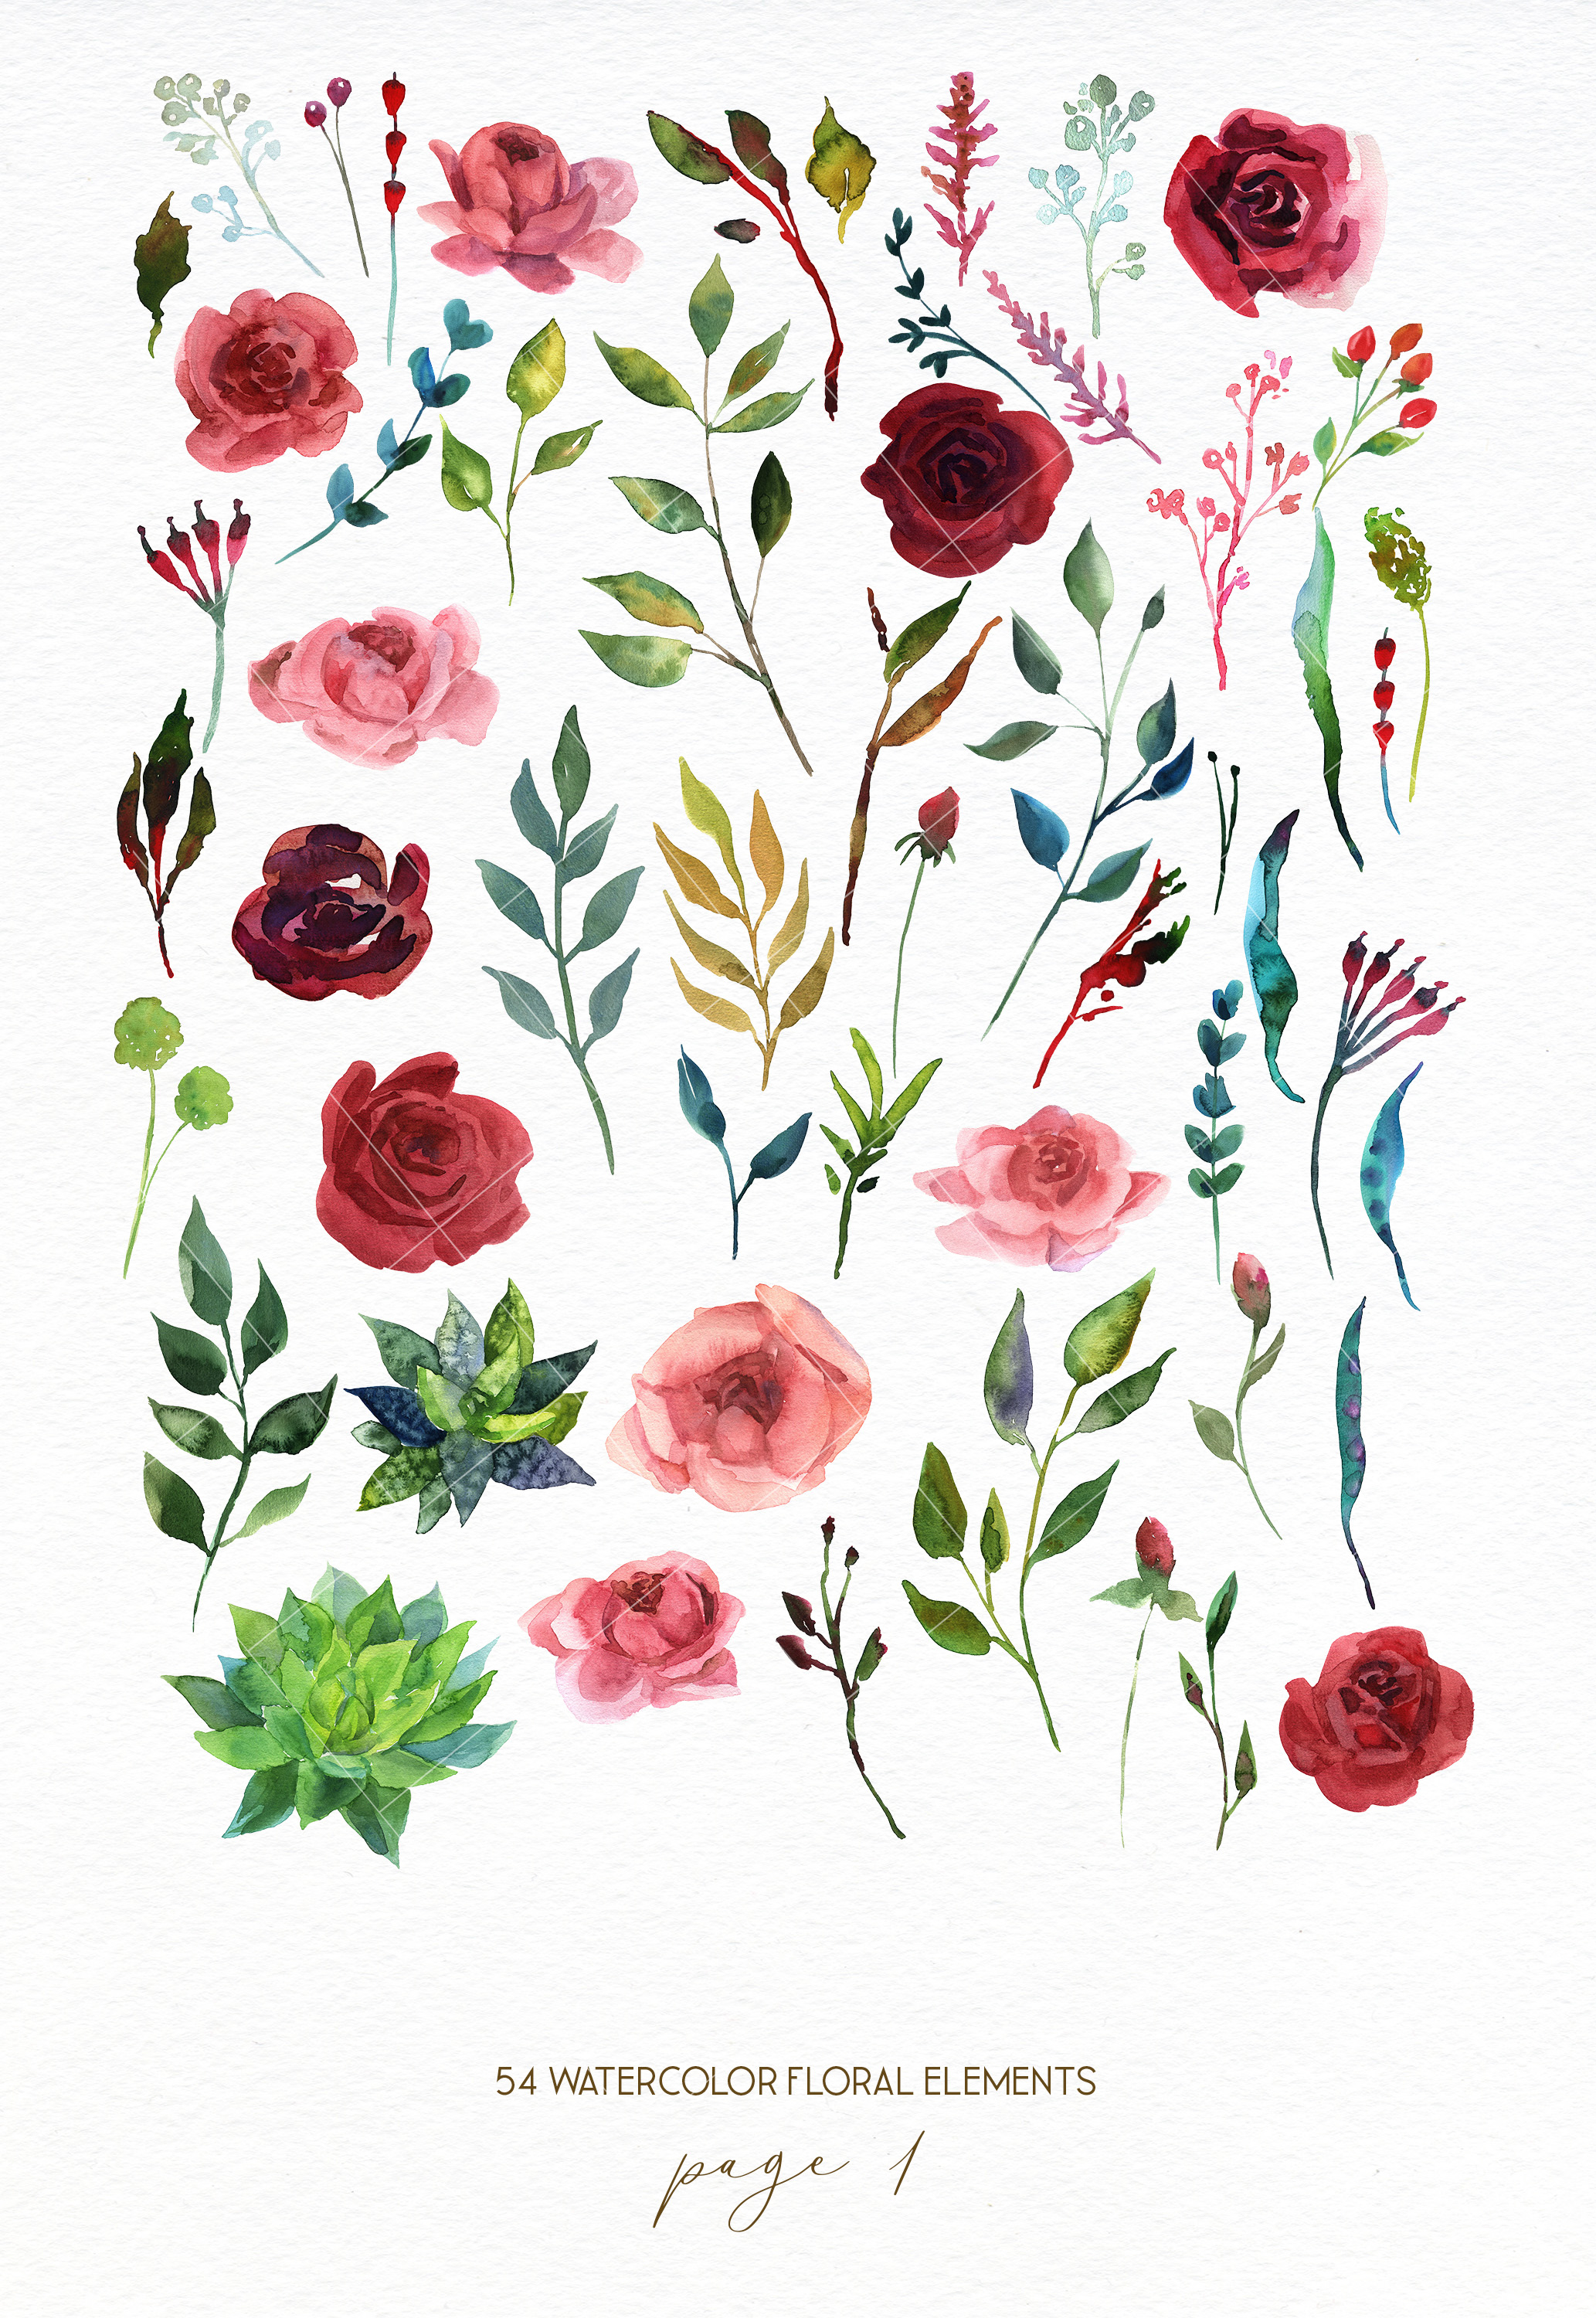 Watercolor red rose flowers wedding clipart, boho pink peony example image 2